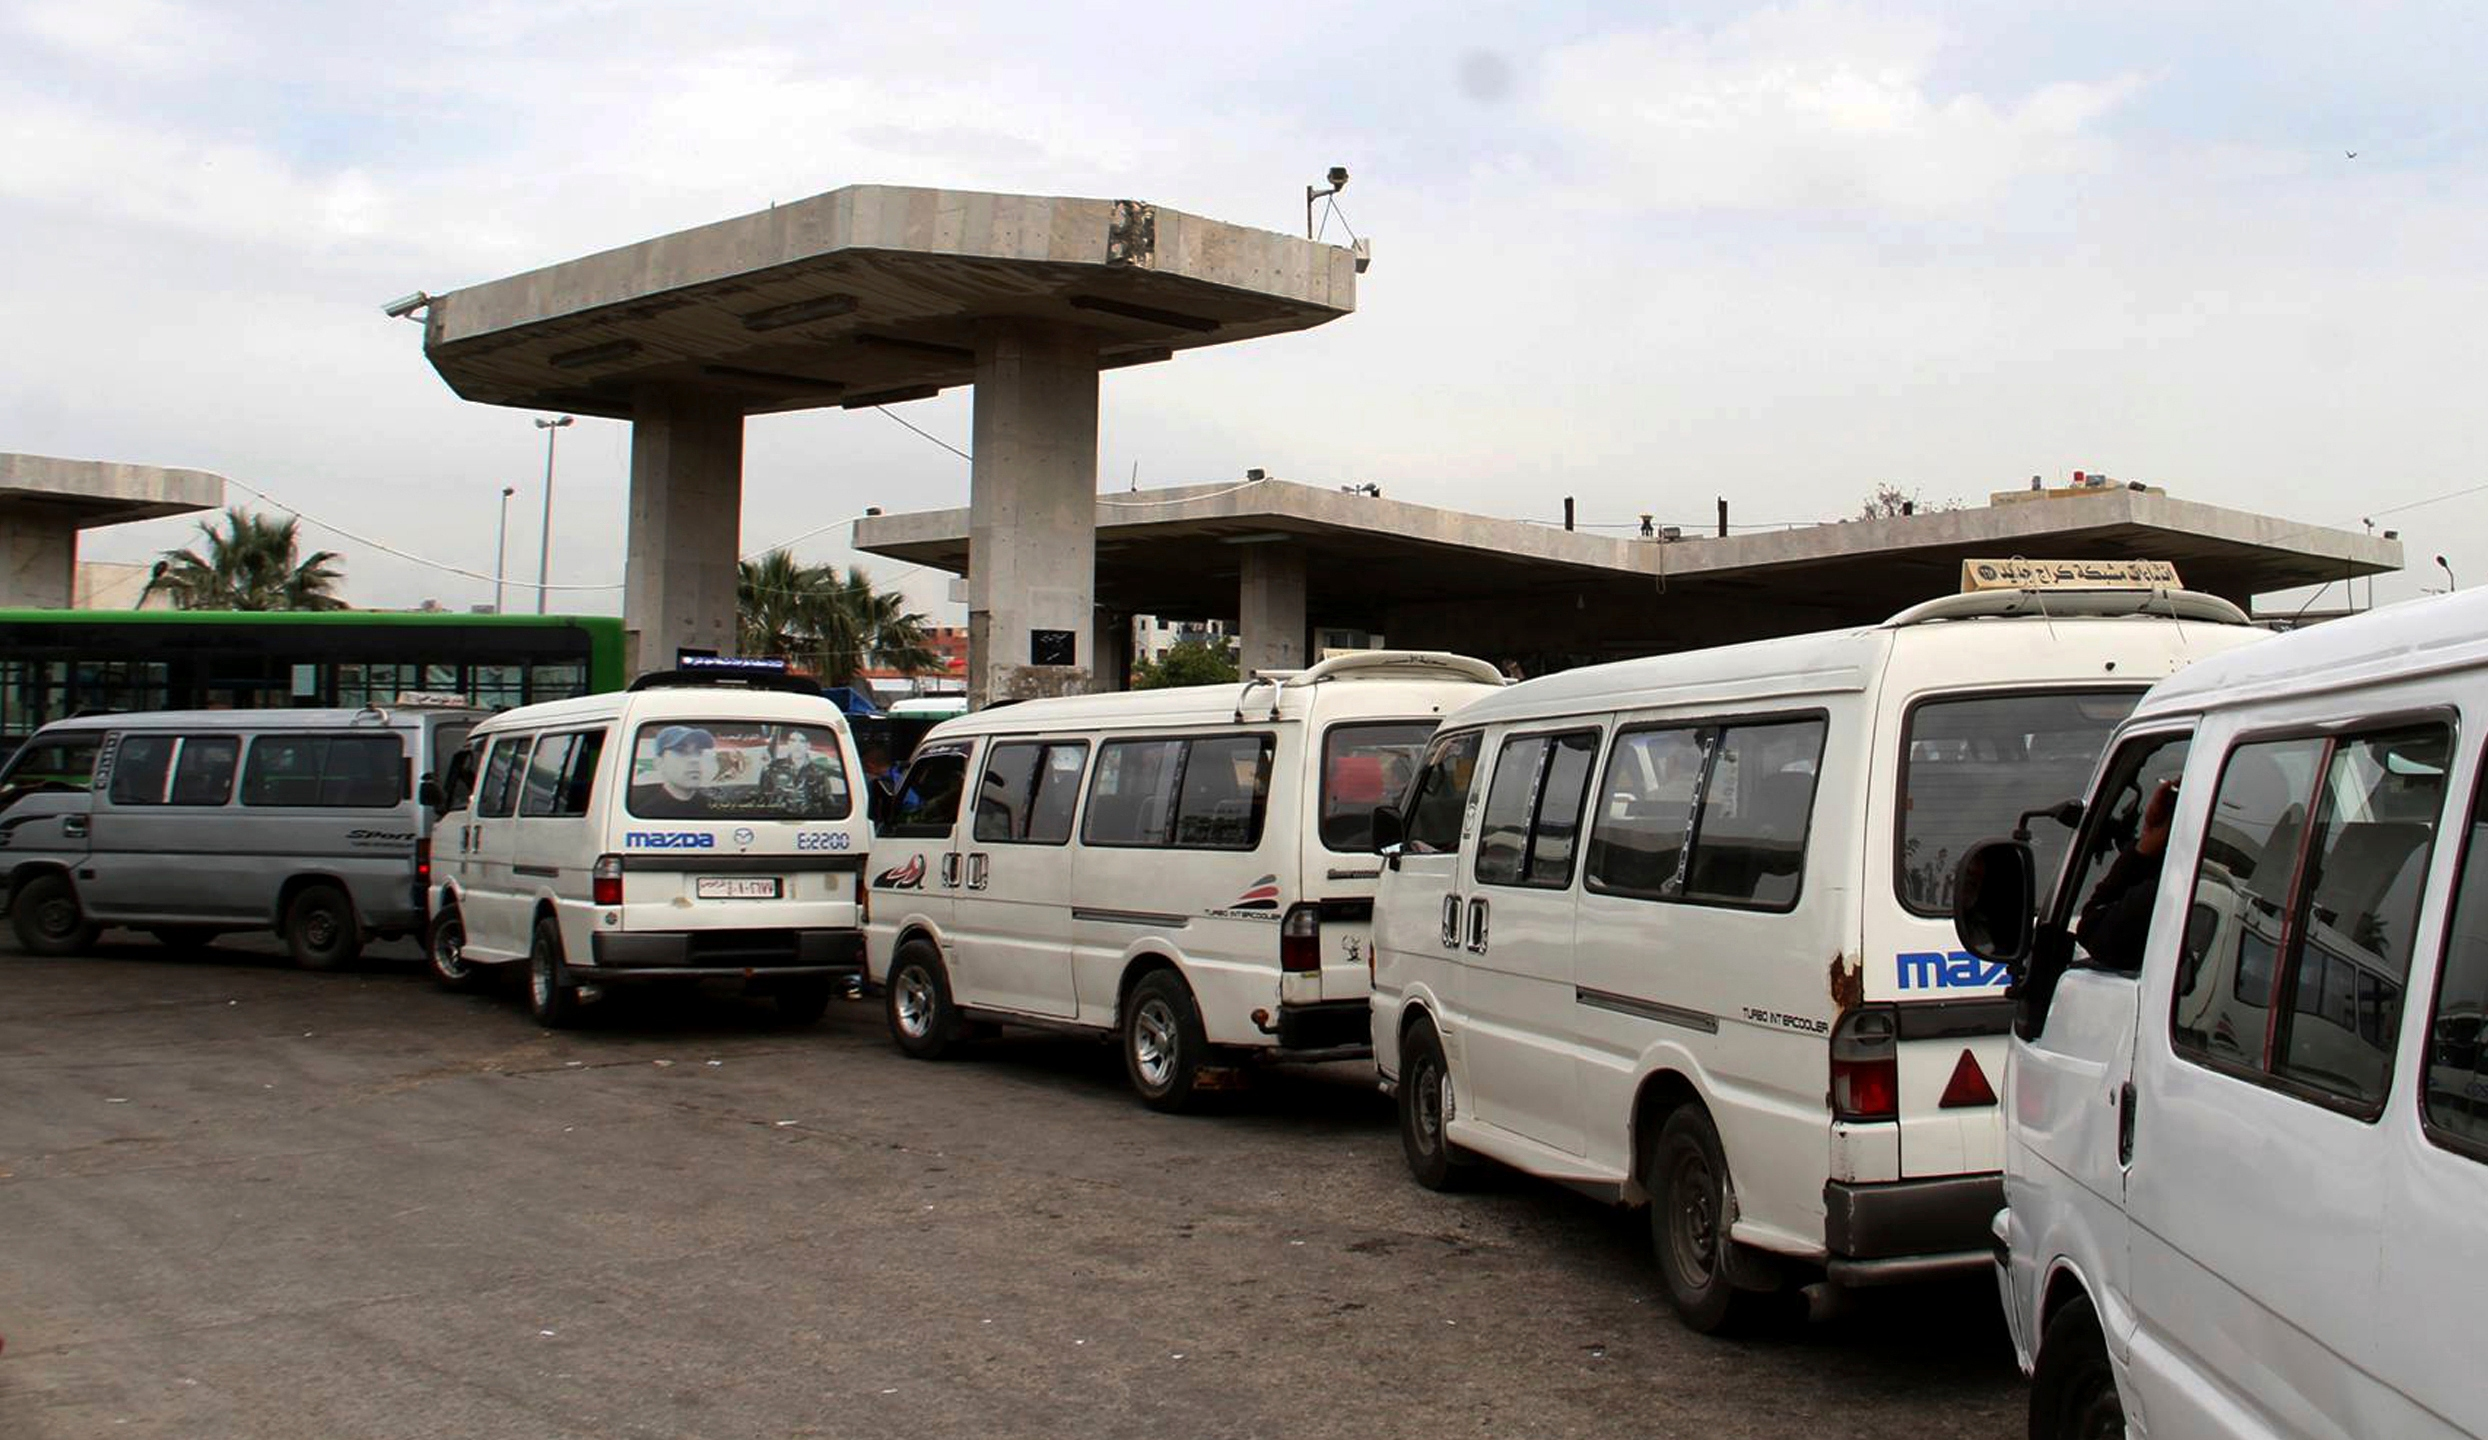 Syria temporarily cuts supplies of fuel to meet shortages ...